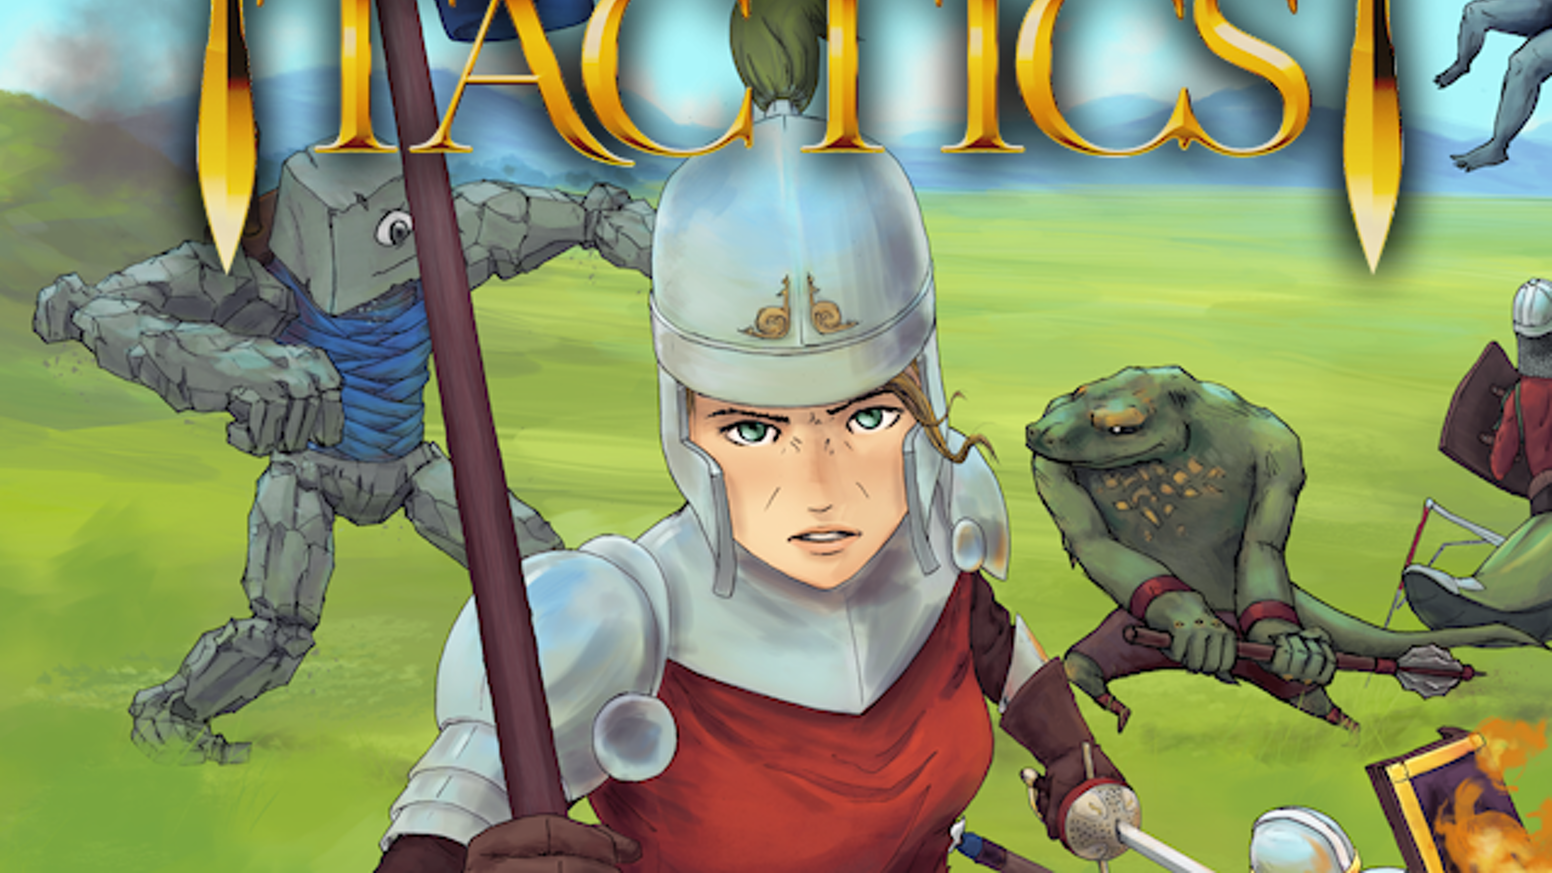 Fire Emblem-style tactical RPG with modding, custom campaigns, bridge-building, destructible battlefields, and hotseat multiplayer.